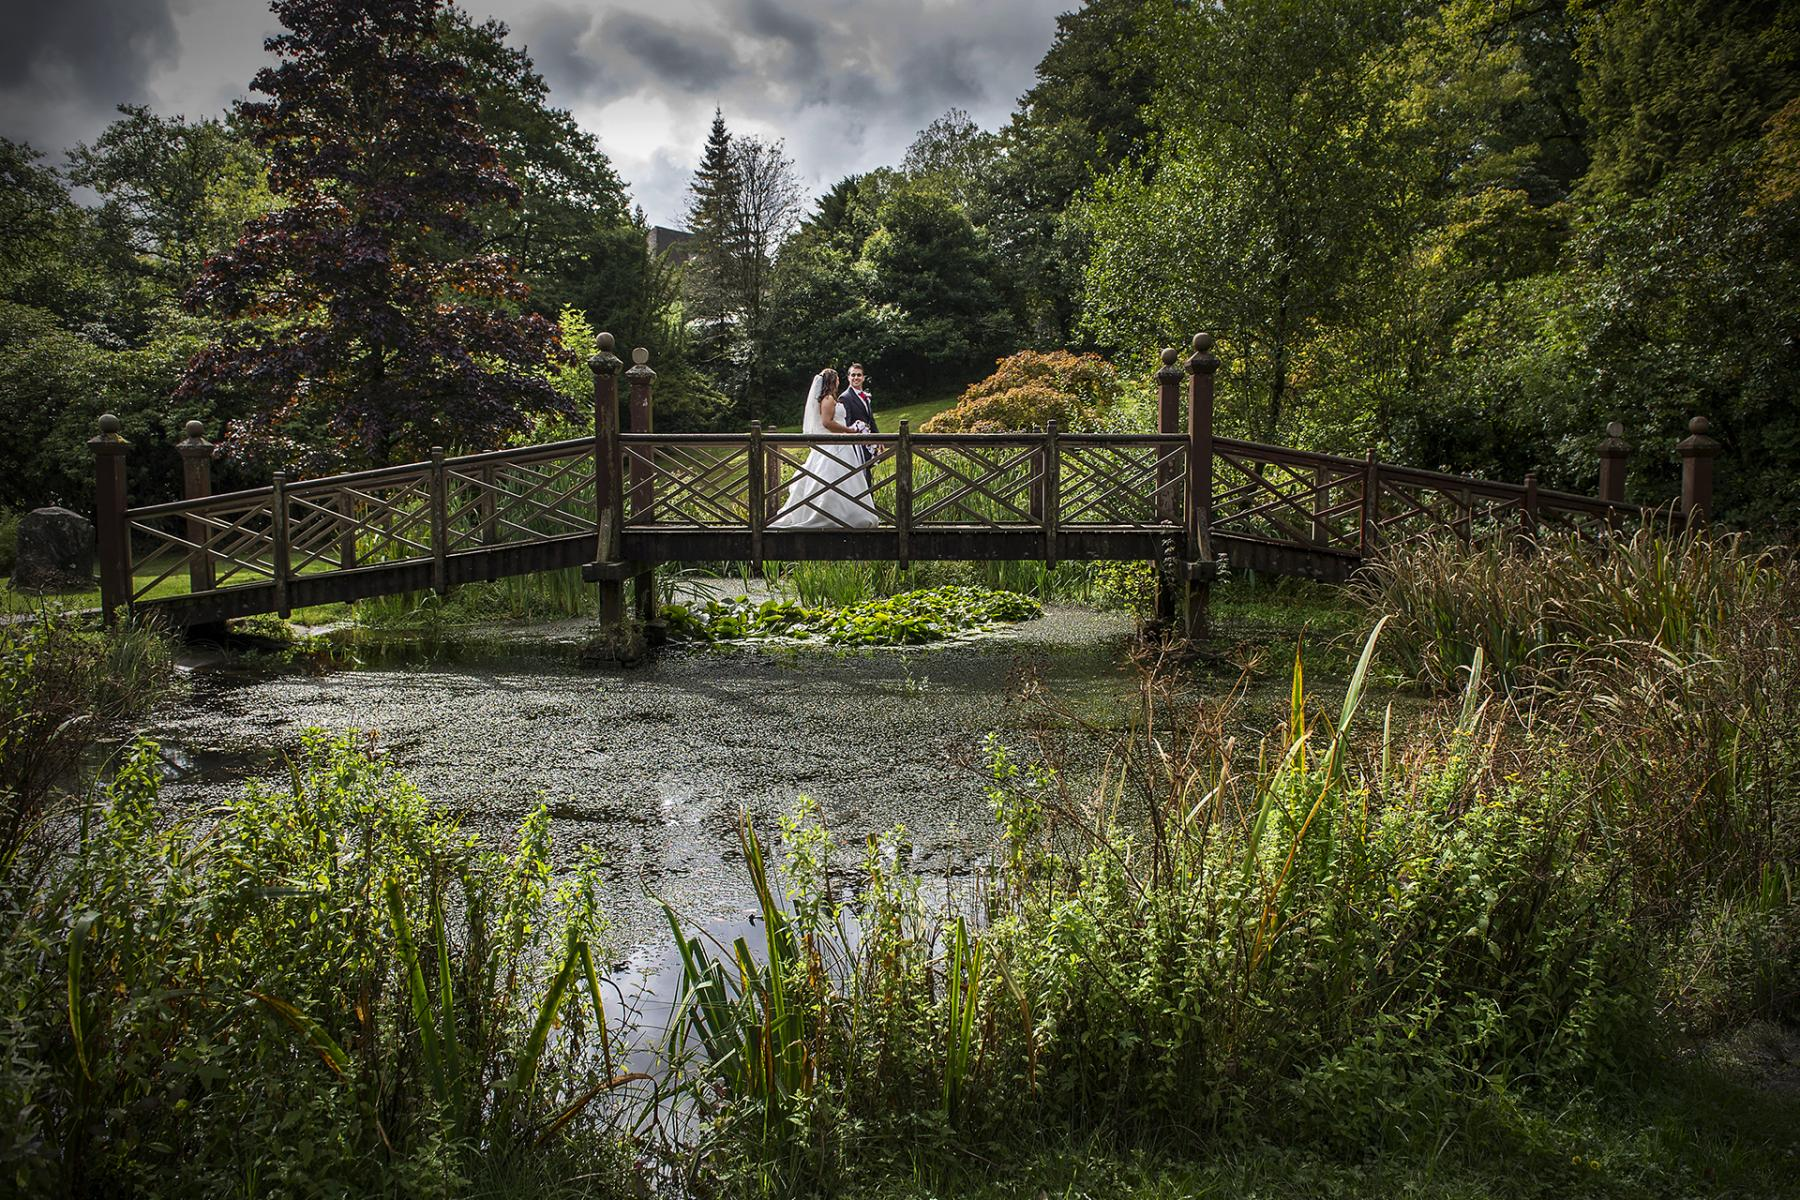 South-wales-wedding-Bryngarw-house-wedding-photographer-bride-groom-footbridge-summer-wedding-photographs